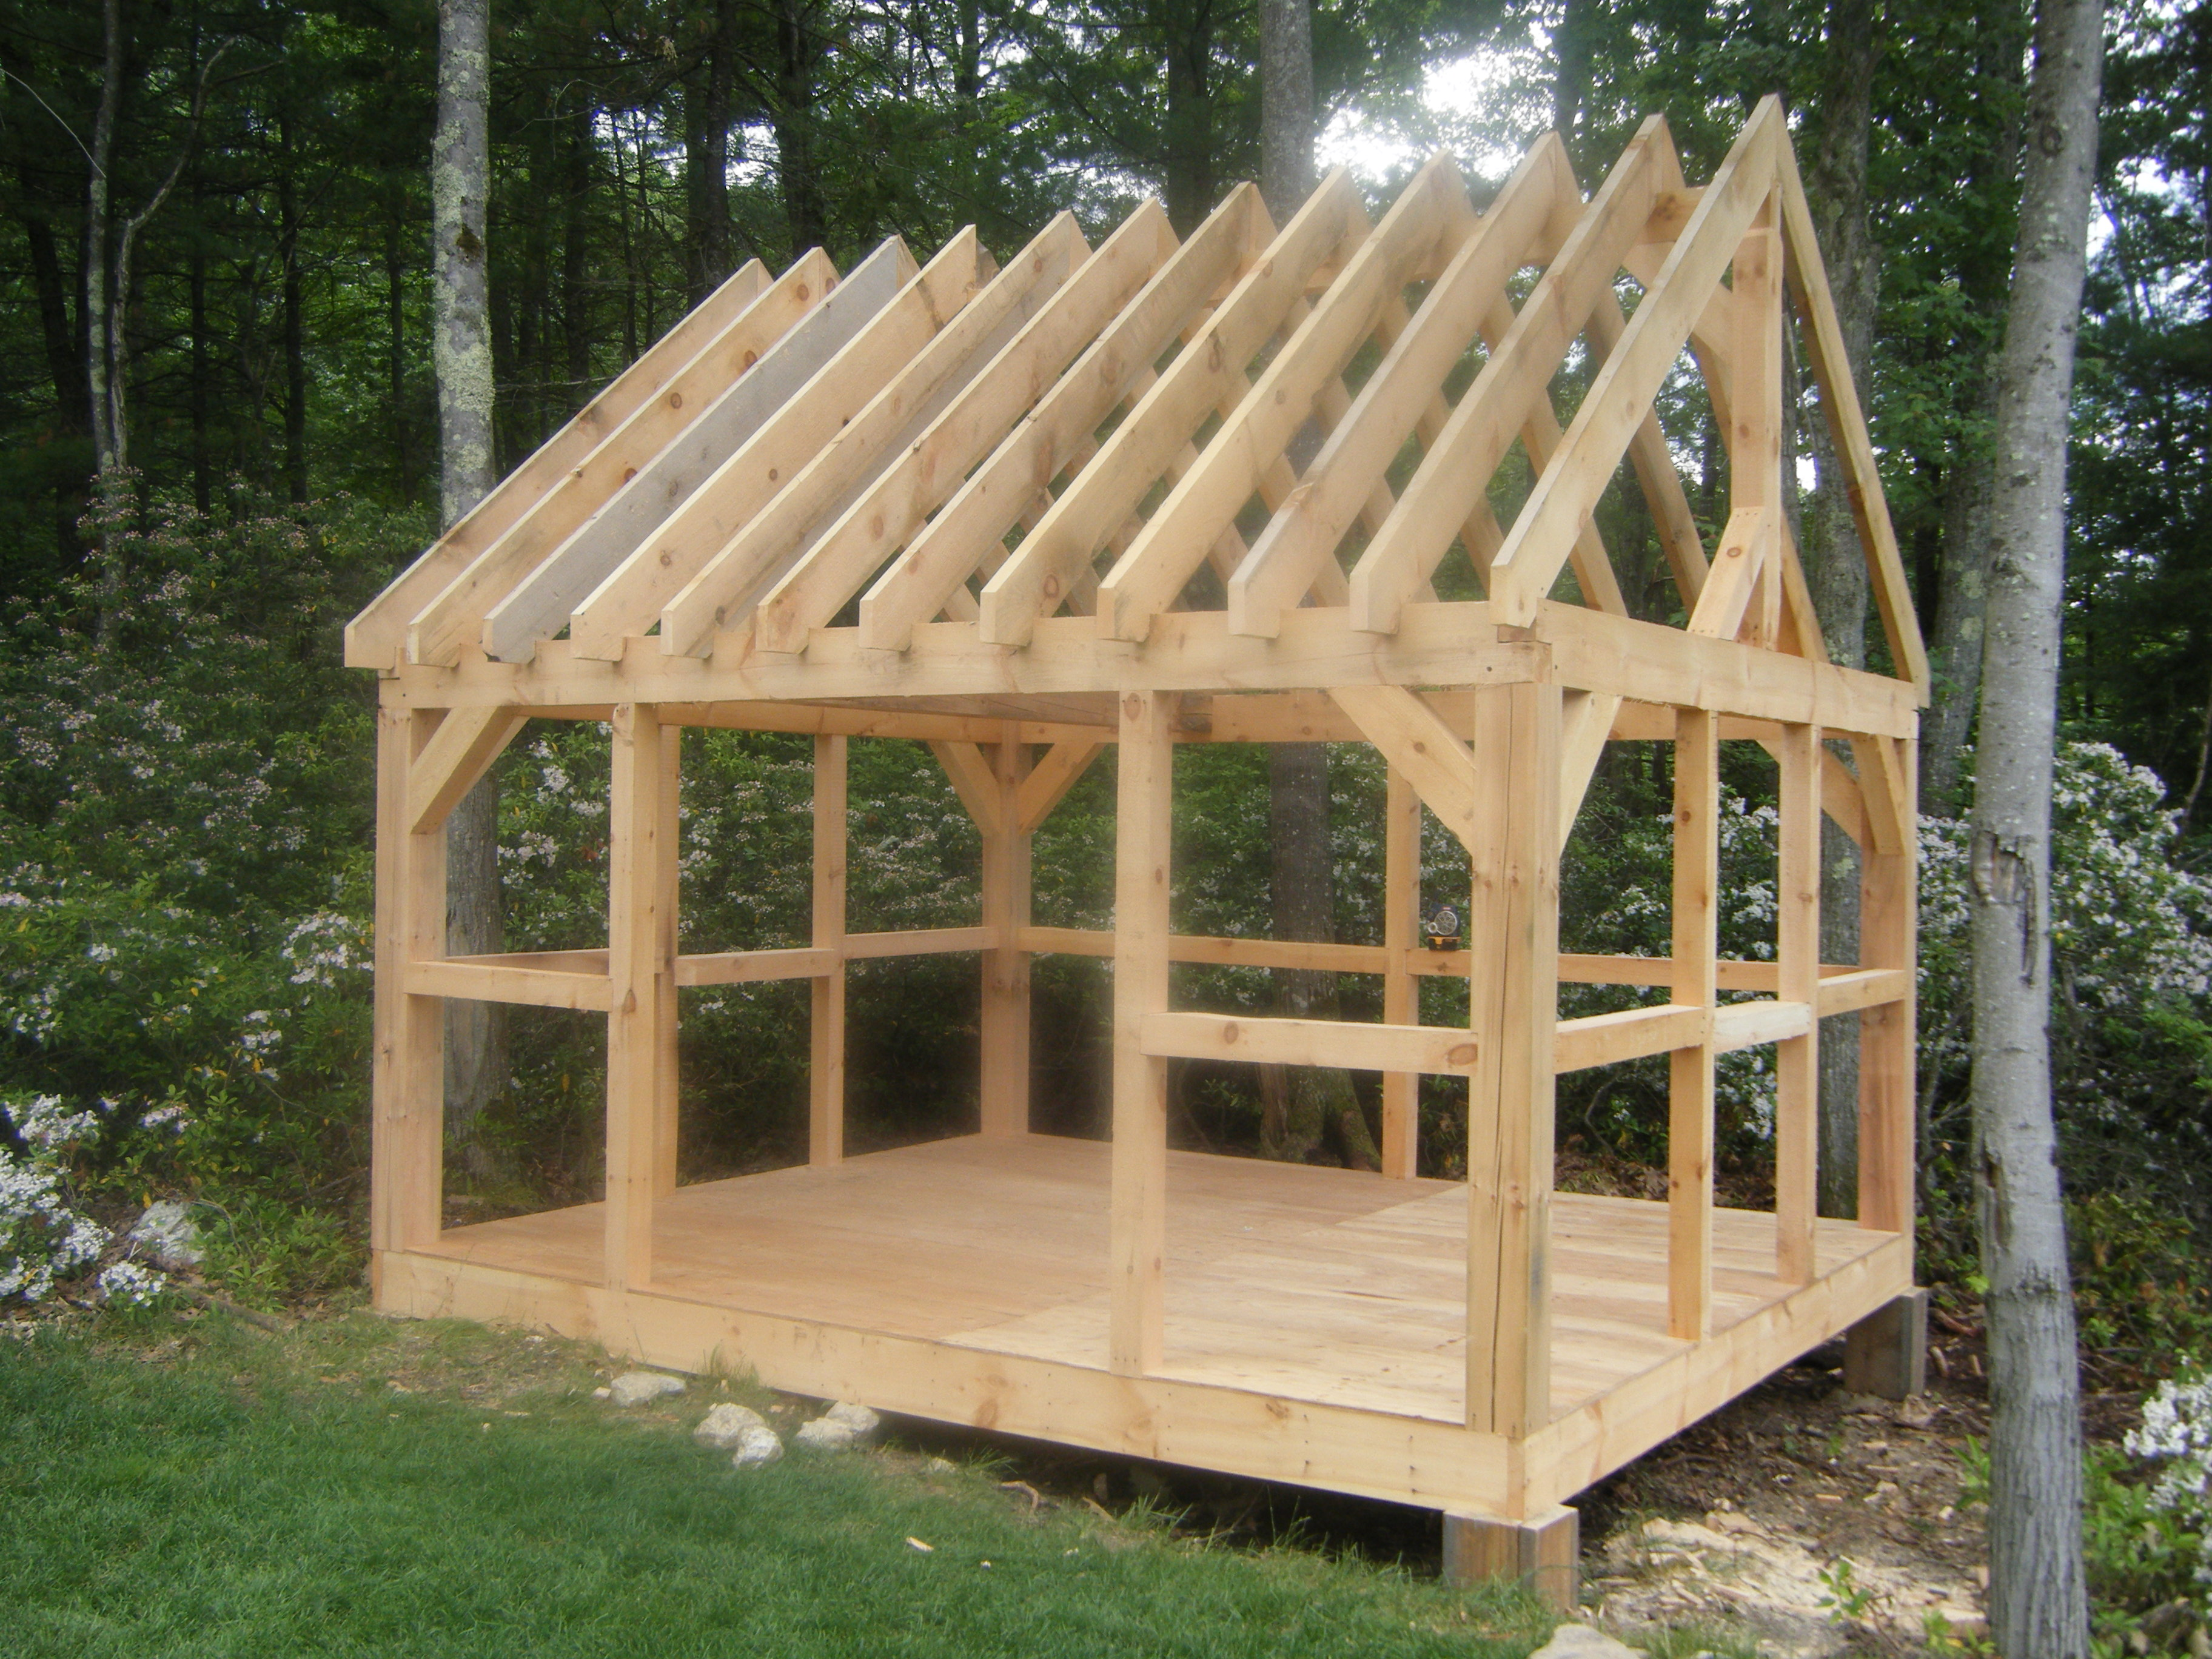 How to Build a Barn Shed – Basics of Building Your Own | Shed ...